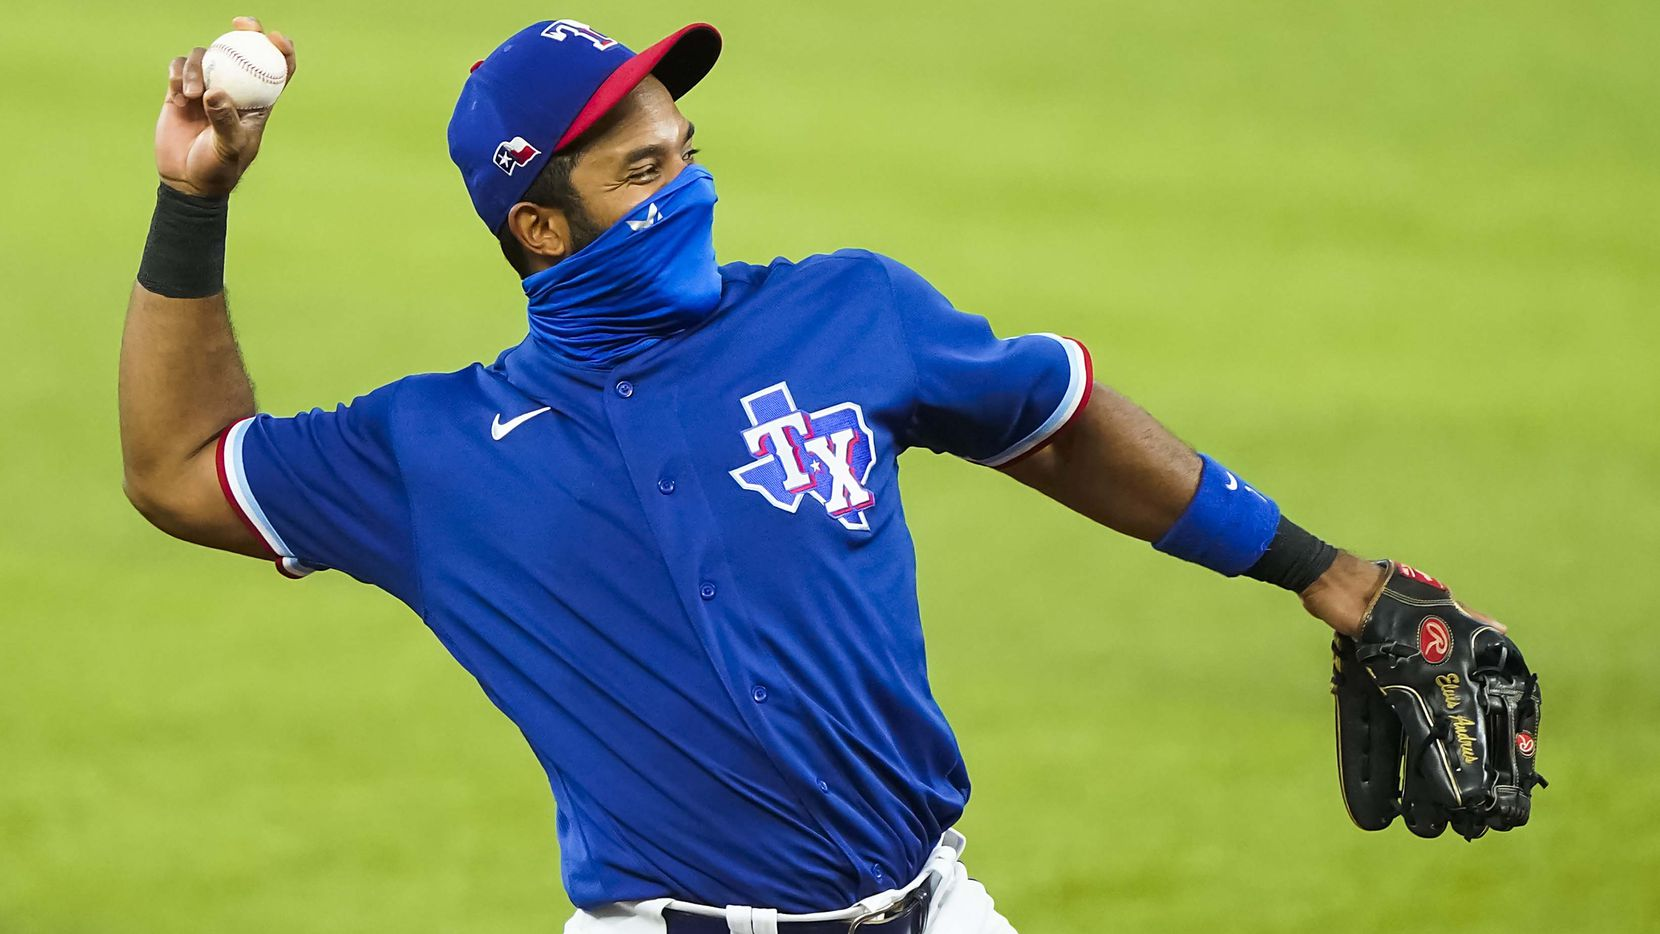 Texas Rangers shortstop Elvis Andrus donned a face mask while warming up before an exhibition game against the Colorado Rockies at Globe Life Field on Tuesday, July 21, 2020.